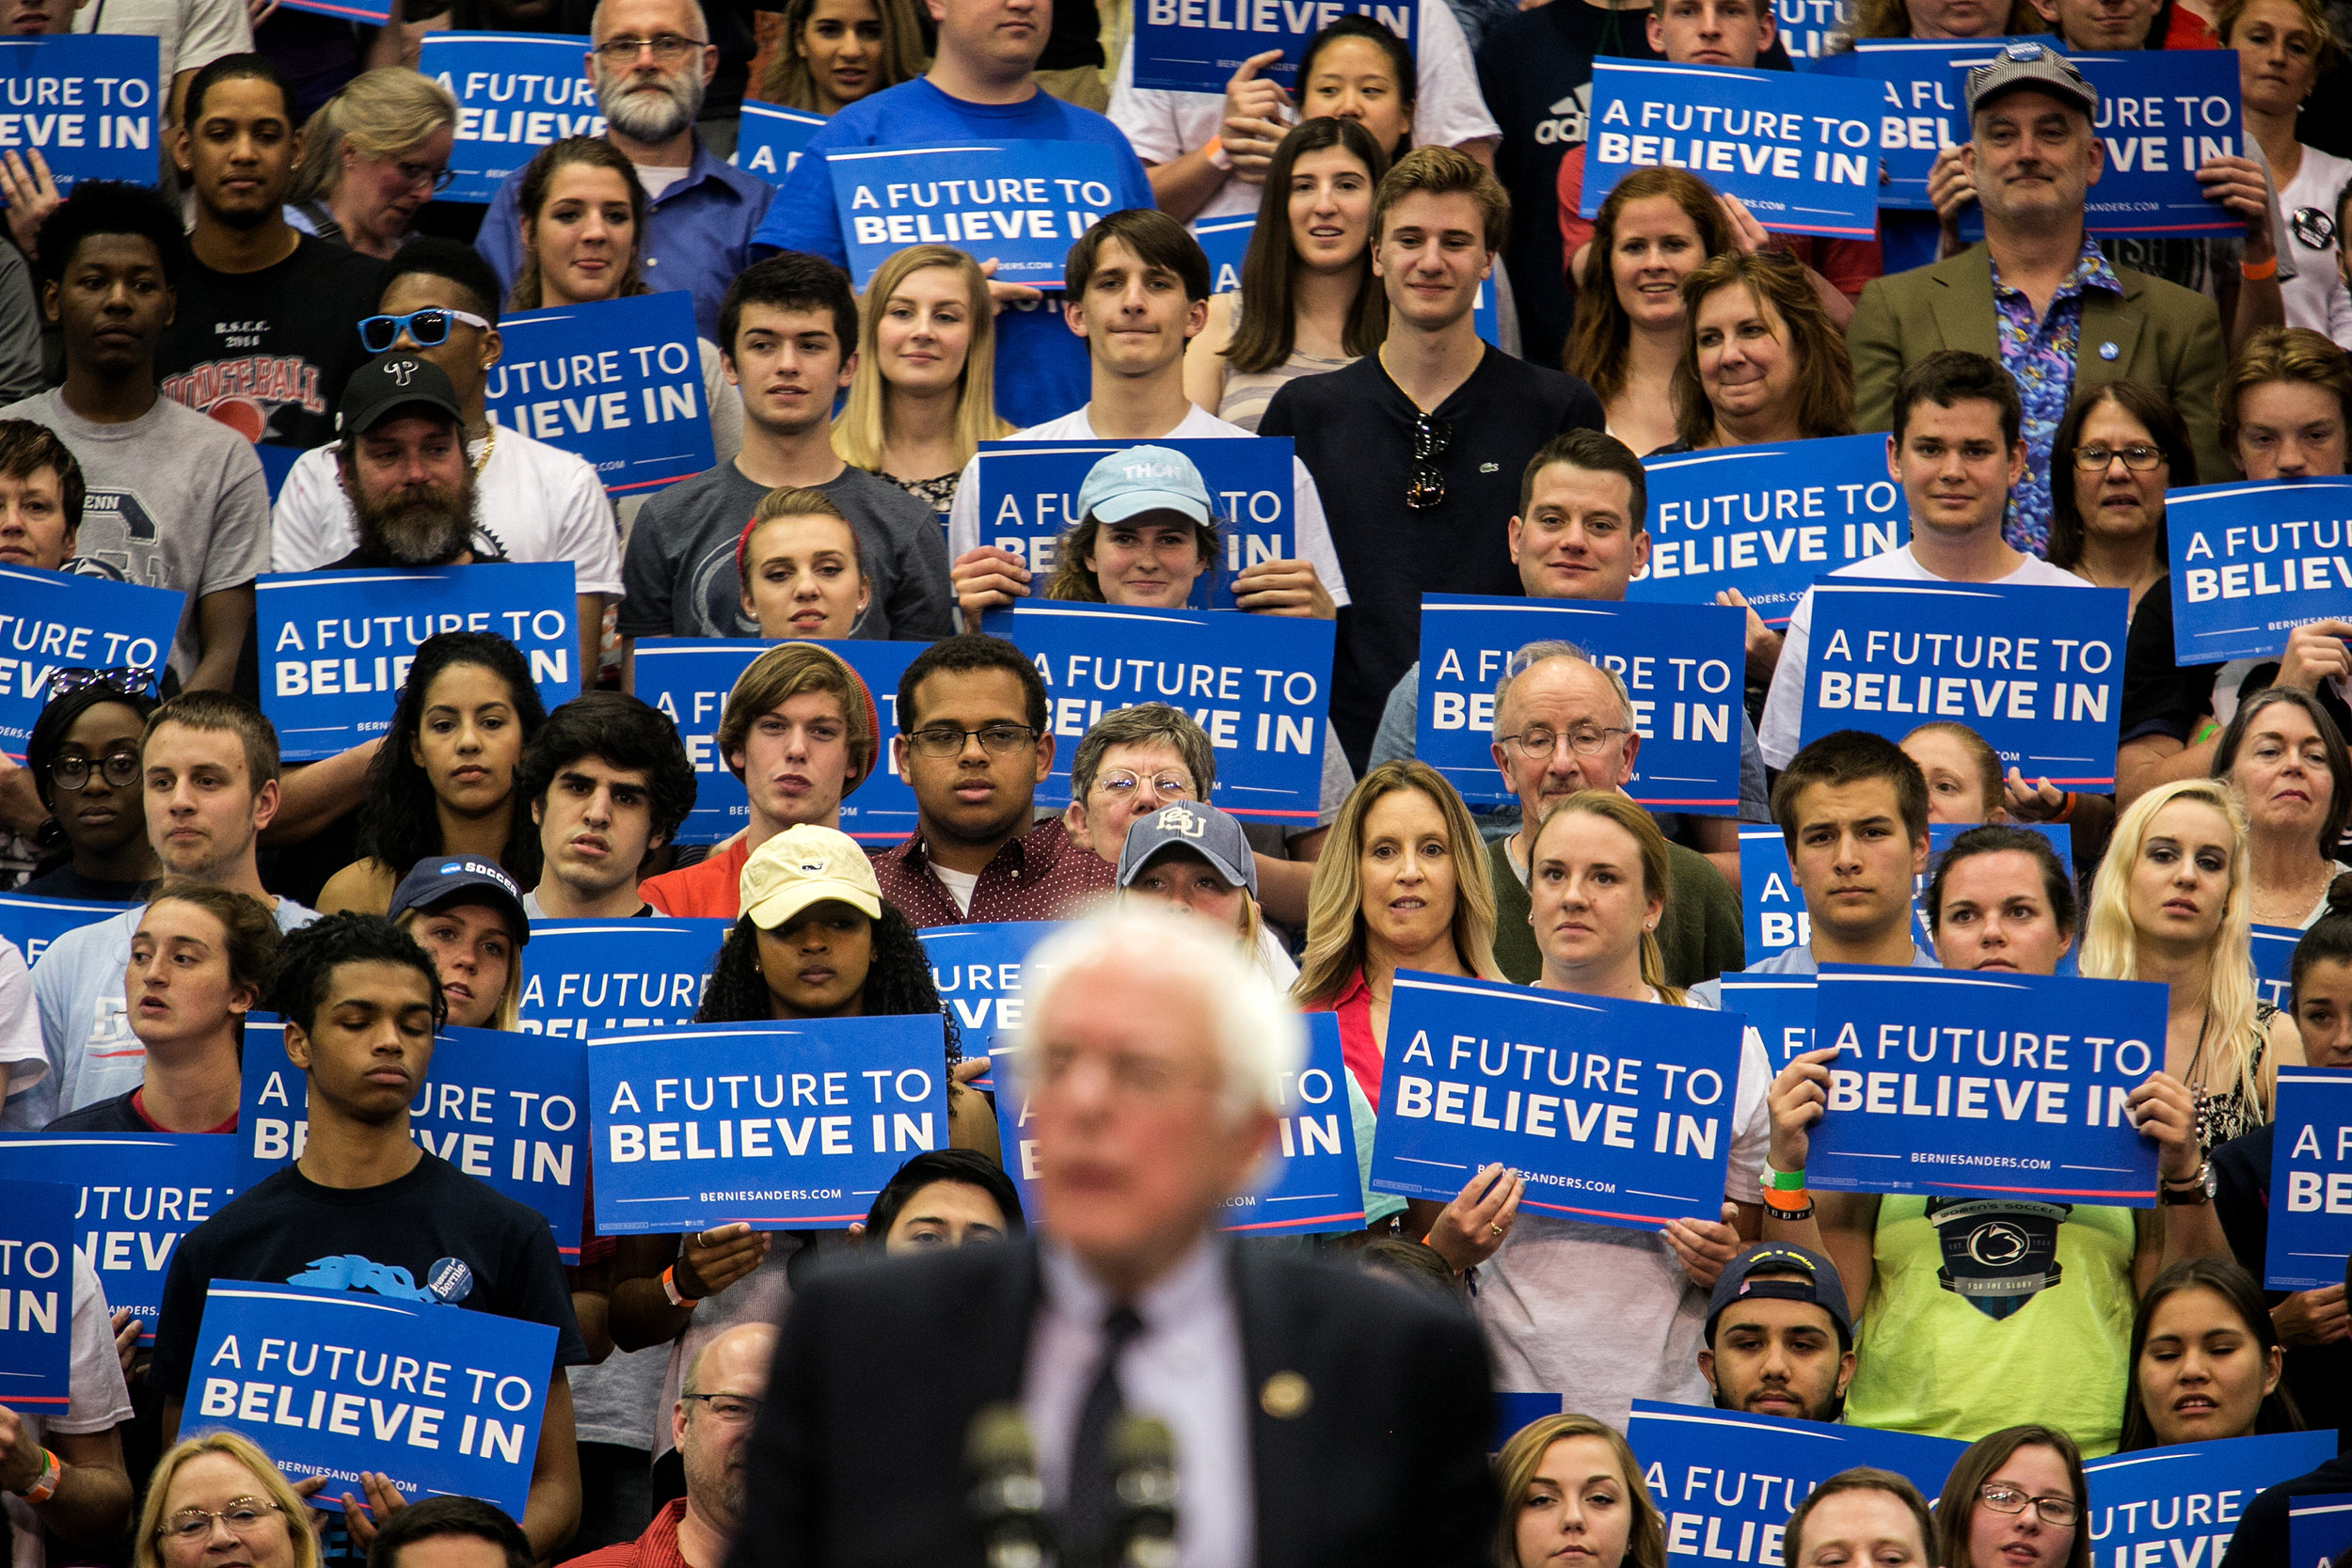 Bernie speaks to a crowd at a rally in State College, Pennsylvania.